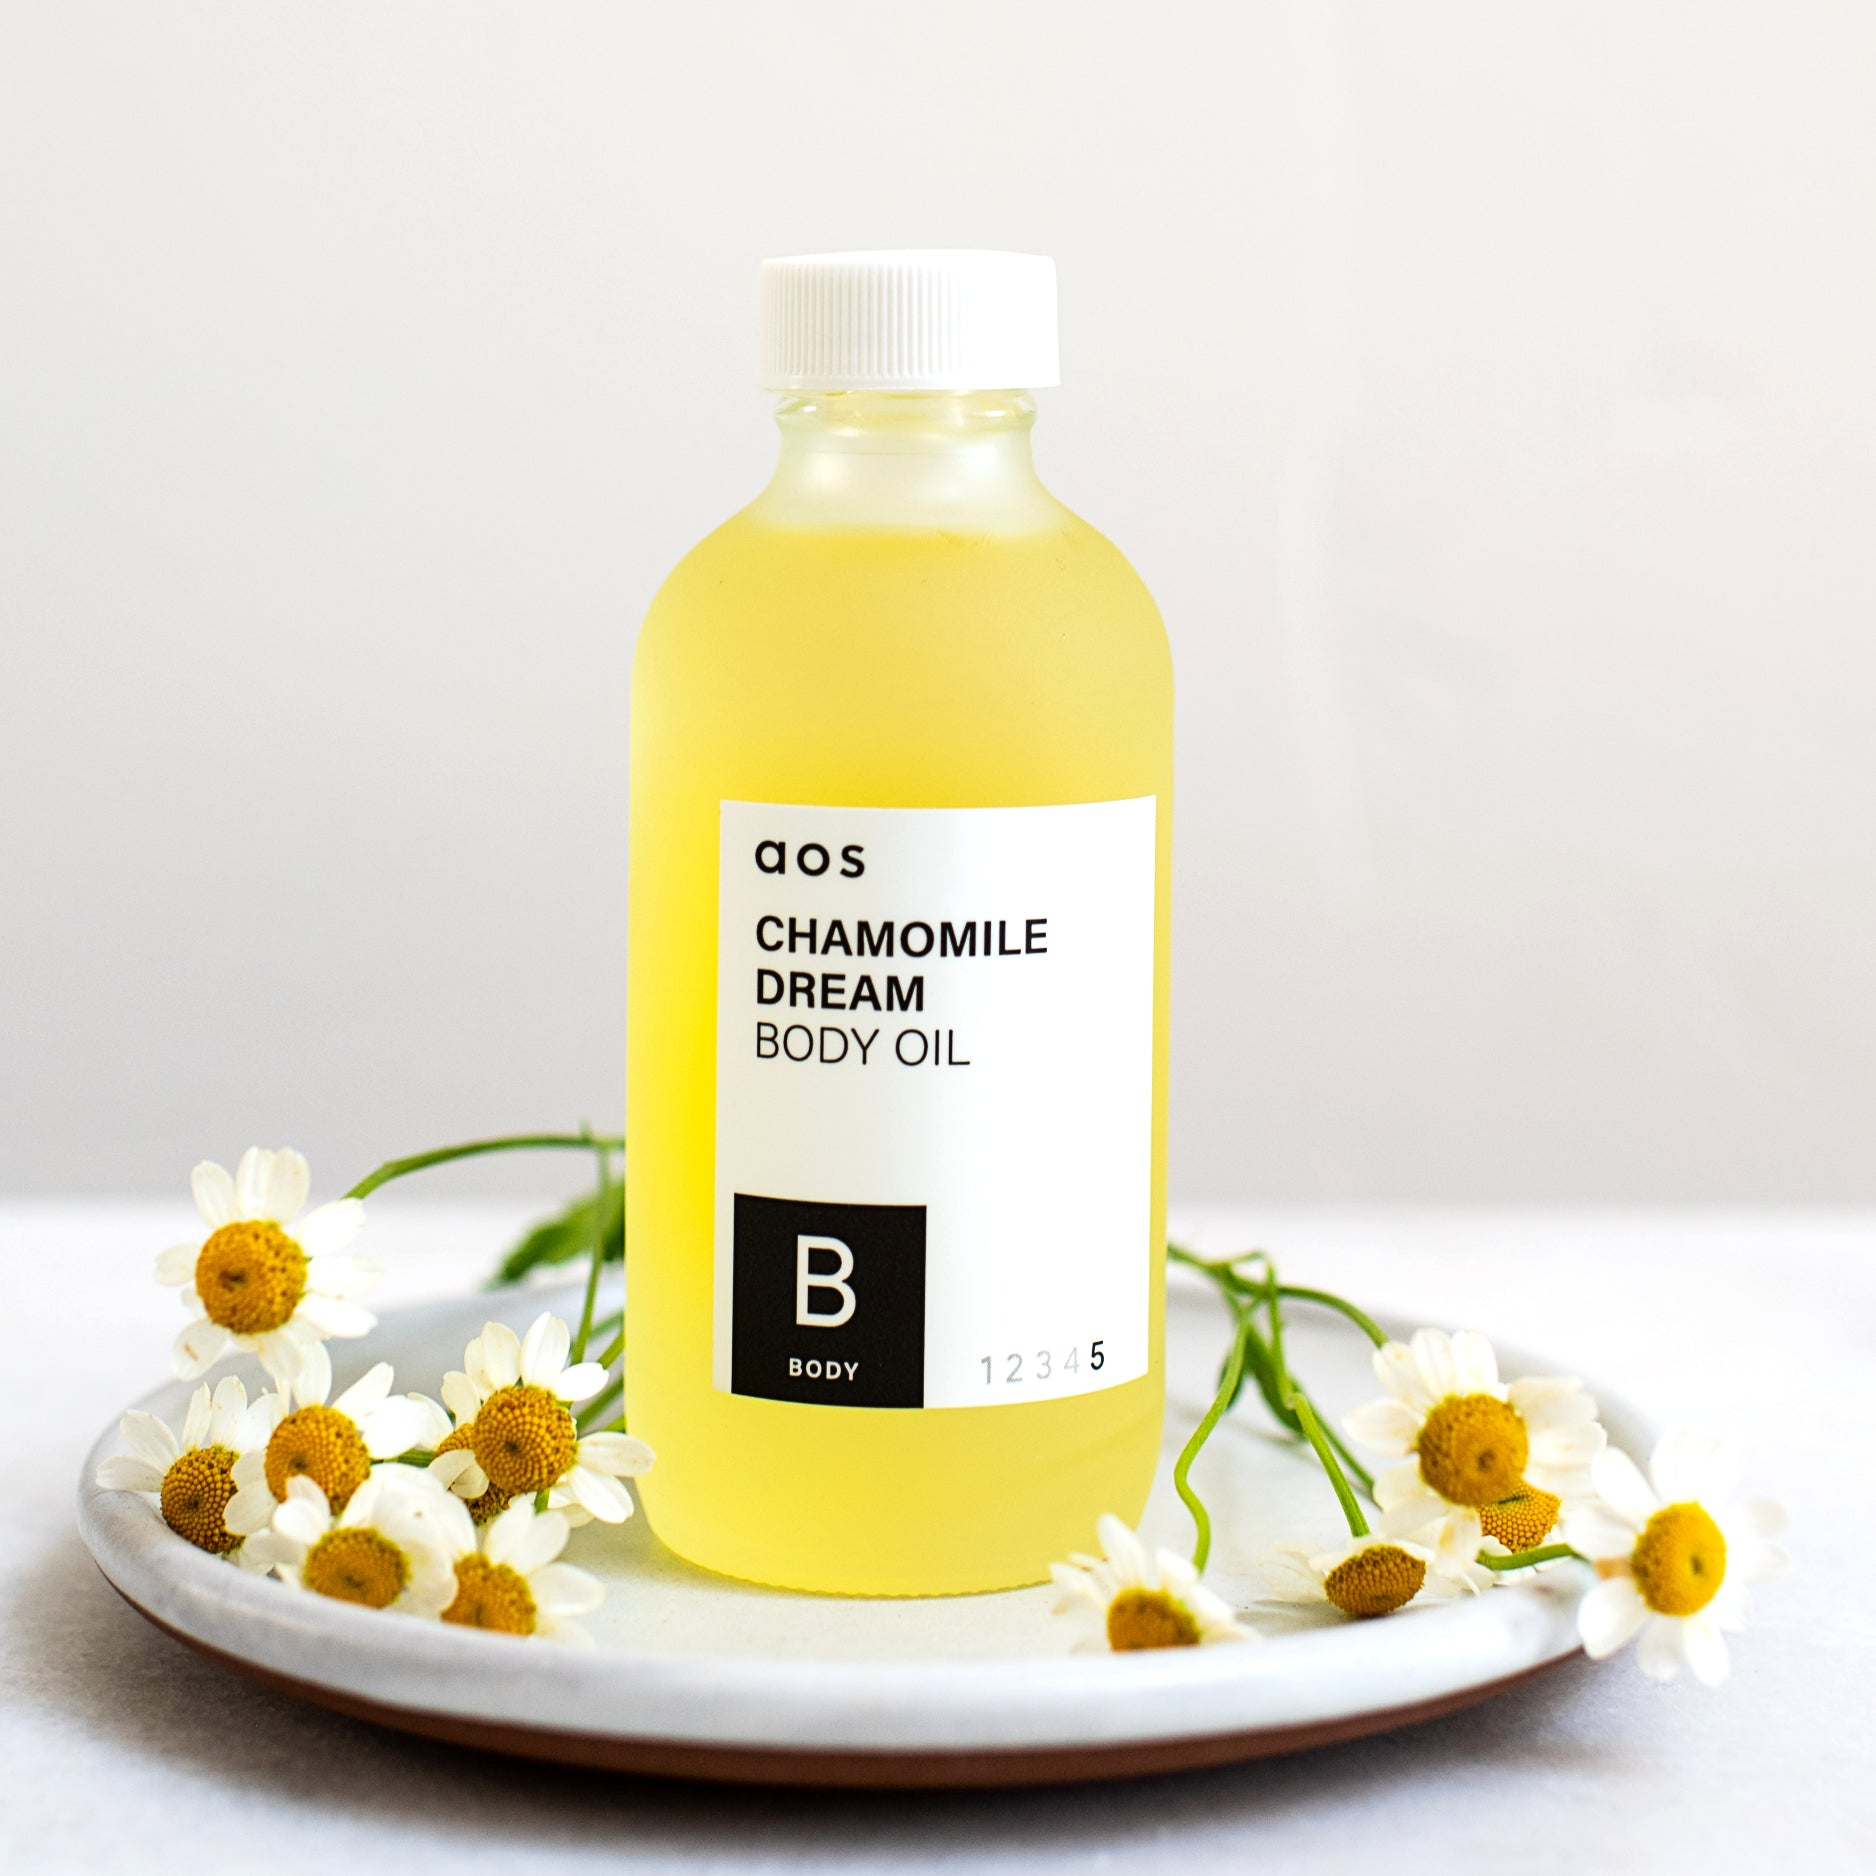 Chamomile Dream Body Oil